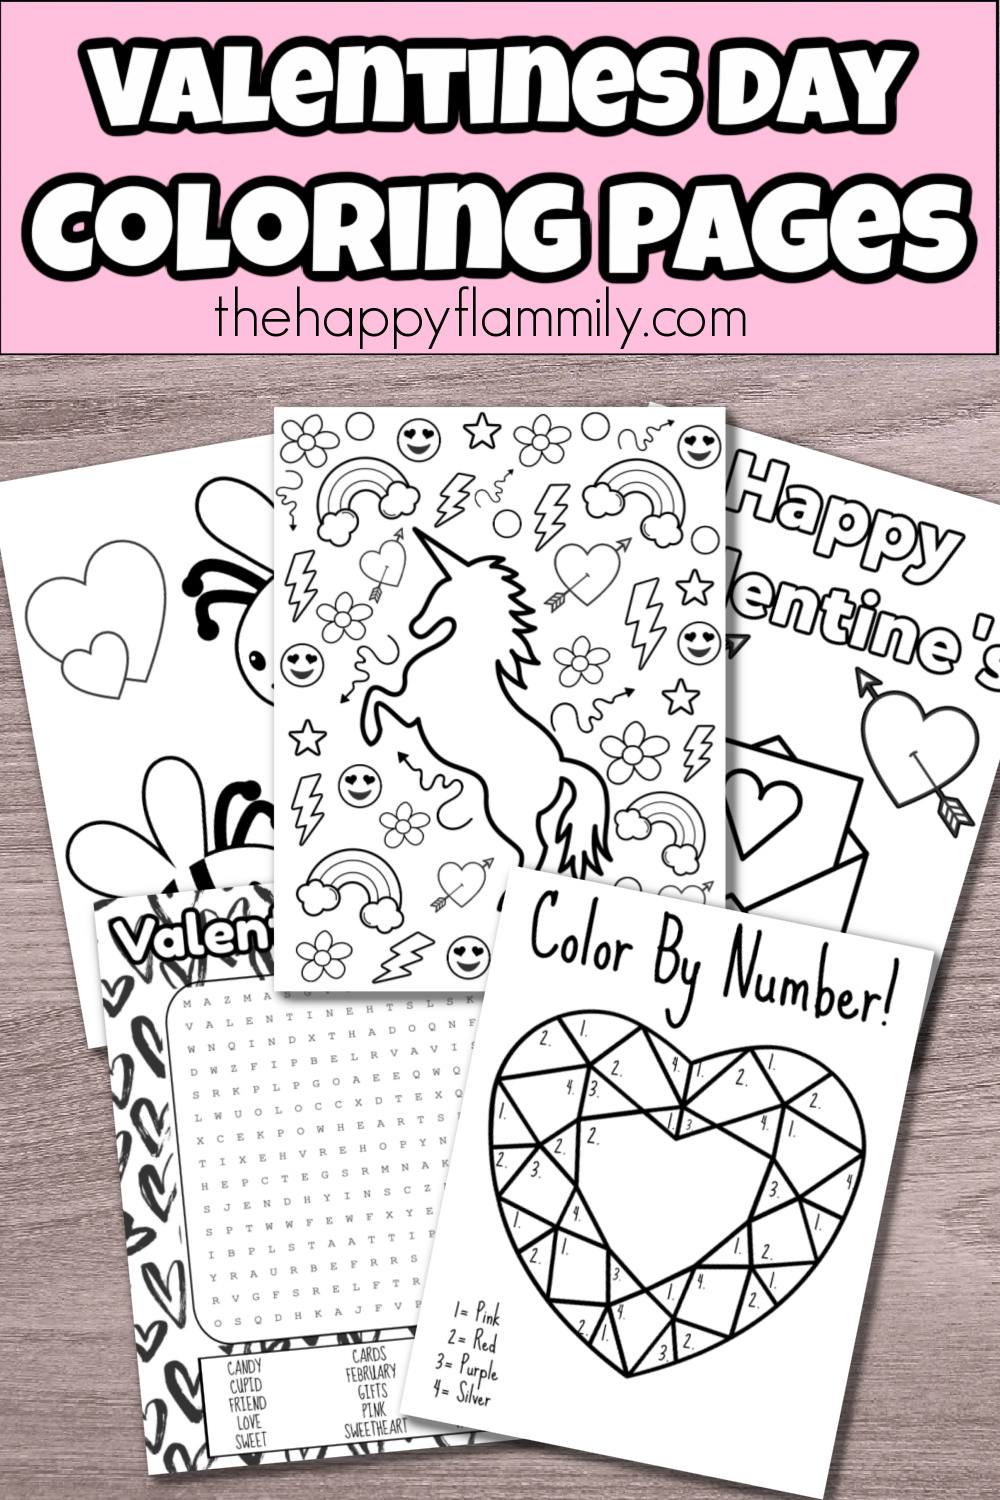 Valentines day coloring pages pdf. Happy Valentine's day coloring pages. Valentines day coloring pages. Valentines coloring pages. Coloring pages valentines day. Valentines day coloring sheets. #valentines #February #holiday #coloring #kids #family #preschool